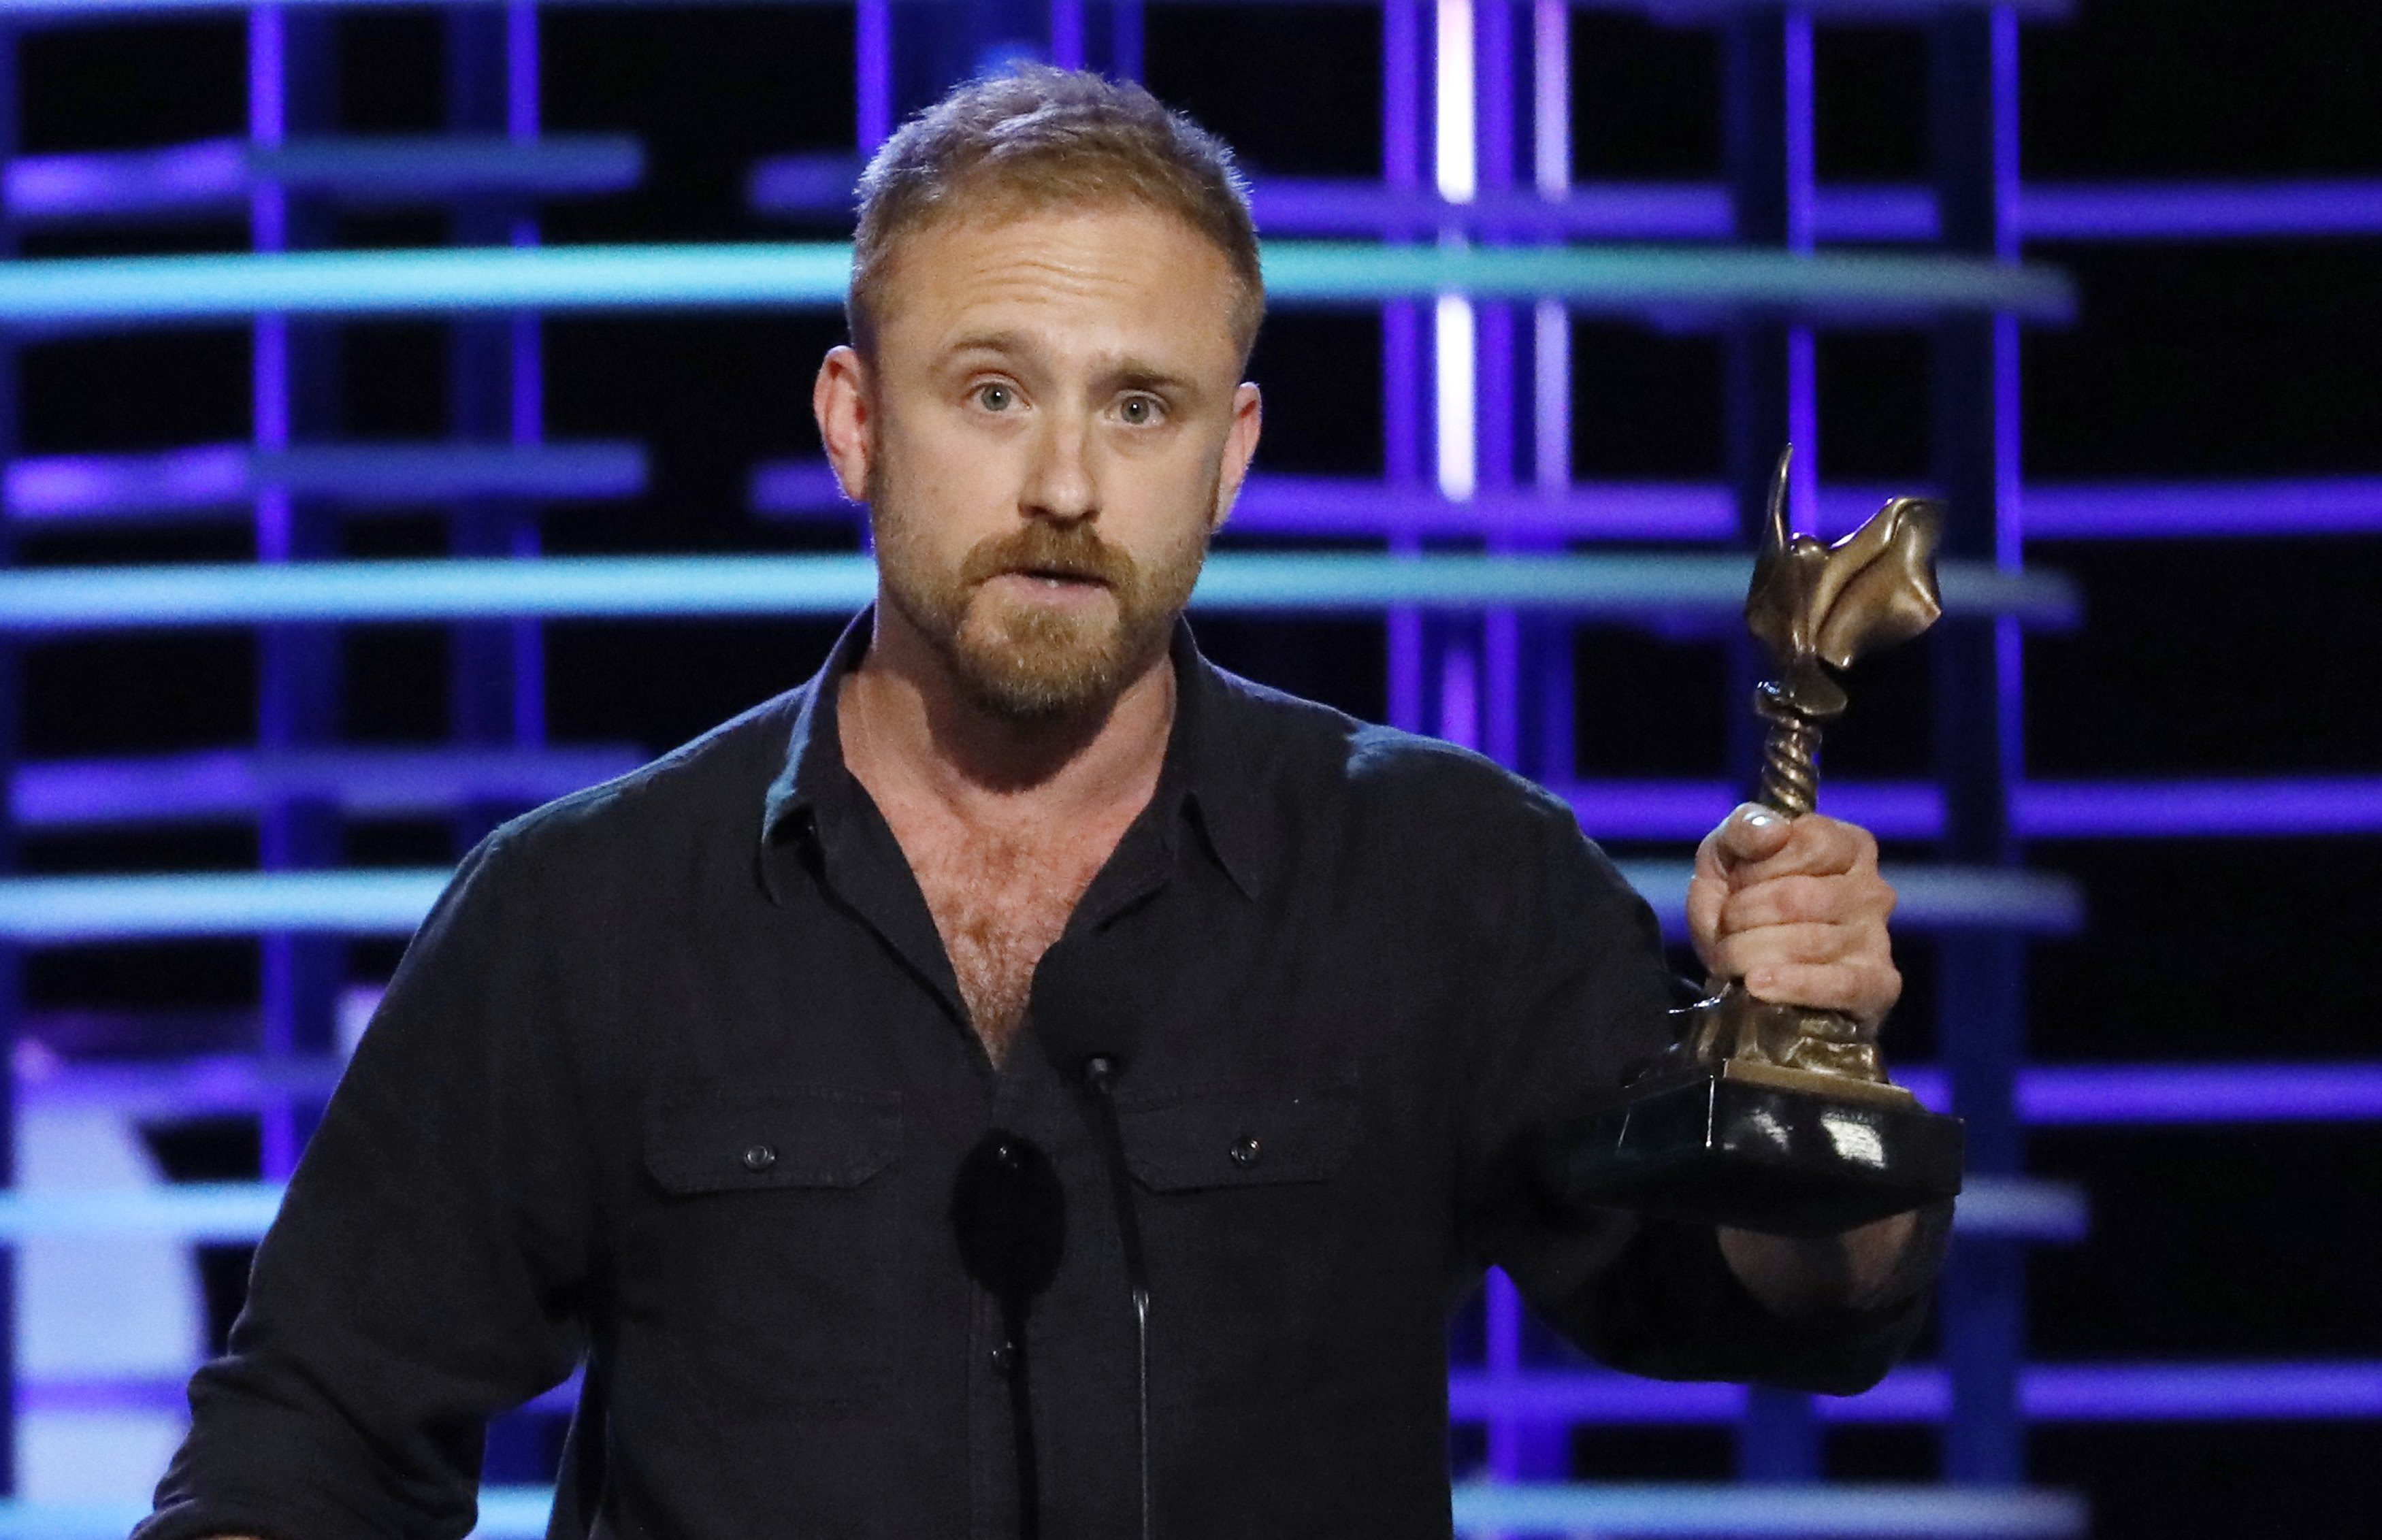 Actor Ben Foster accepts the Best Supporting Male award for his role in the film